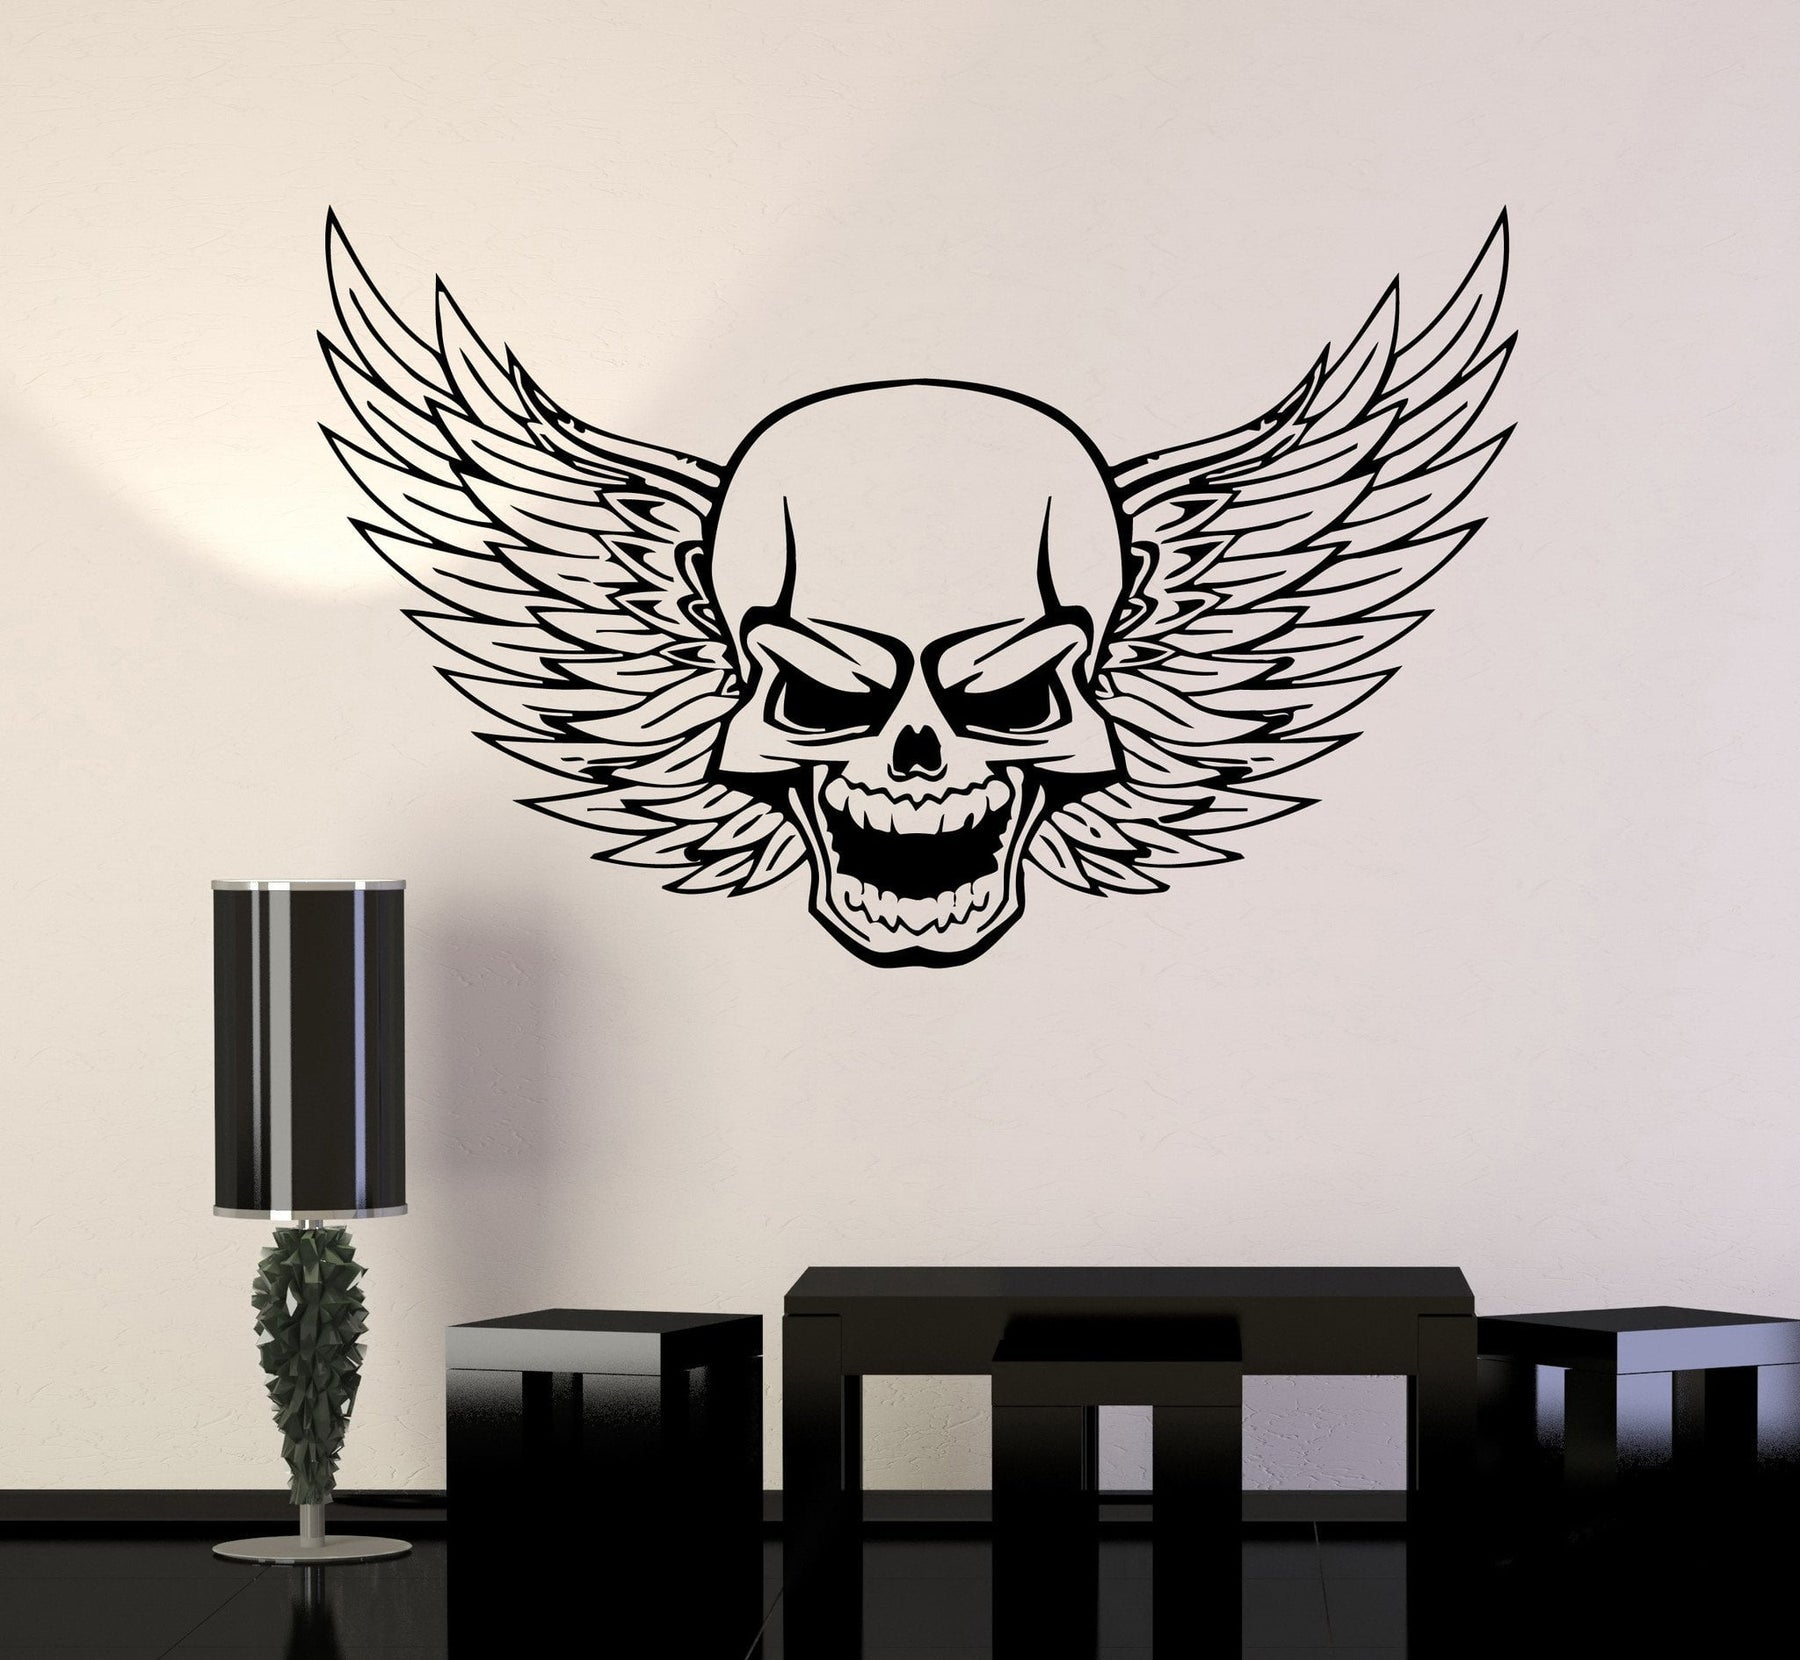 Skull Wall Vinyl Stickers Decal Wings Death Decor for Garage Car Unique Gift (ig493)